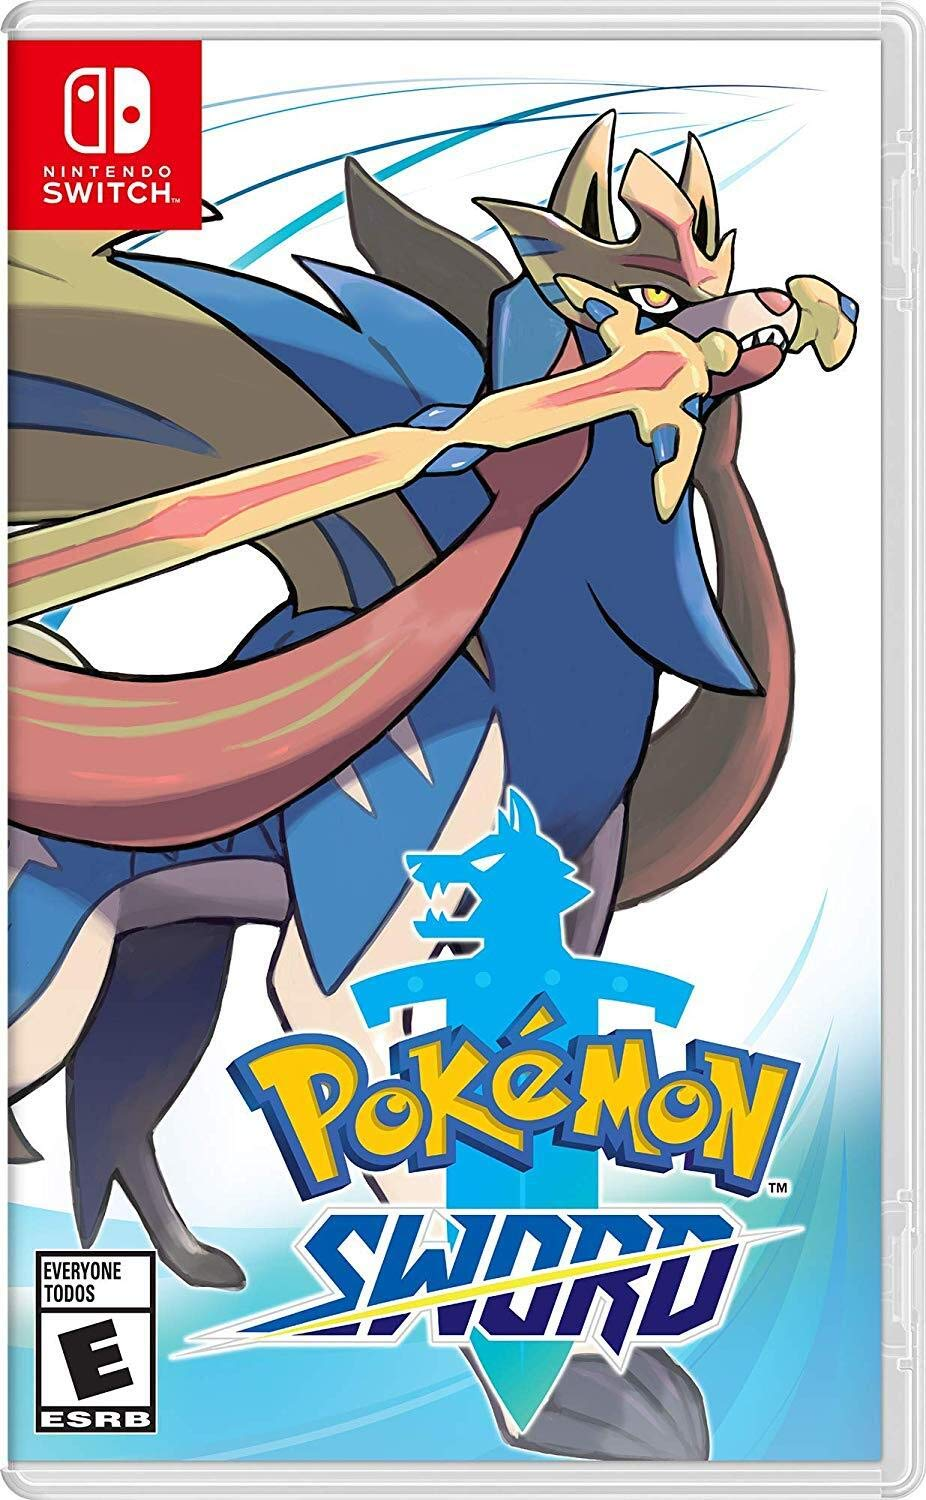 Pokémon Sword for Nintendo Switch [USA]: Amazon.es: Nintendo of ...